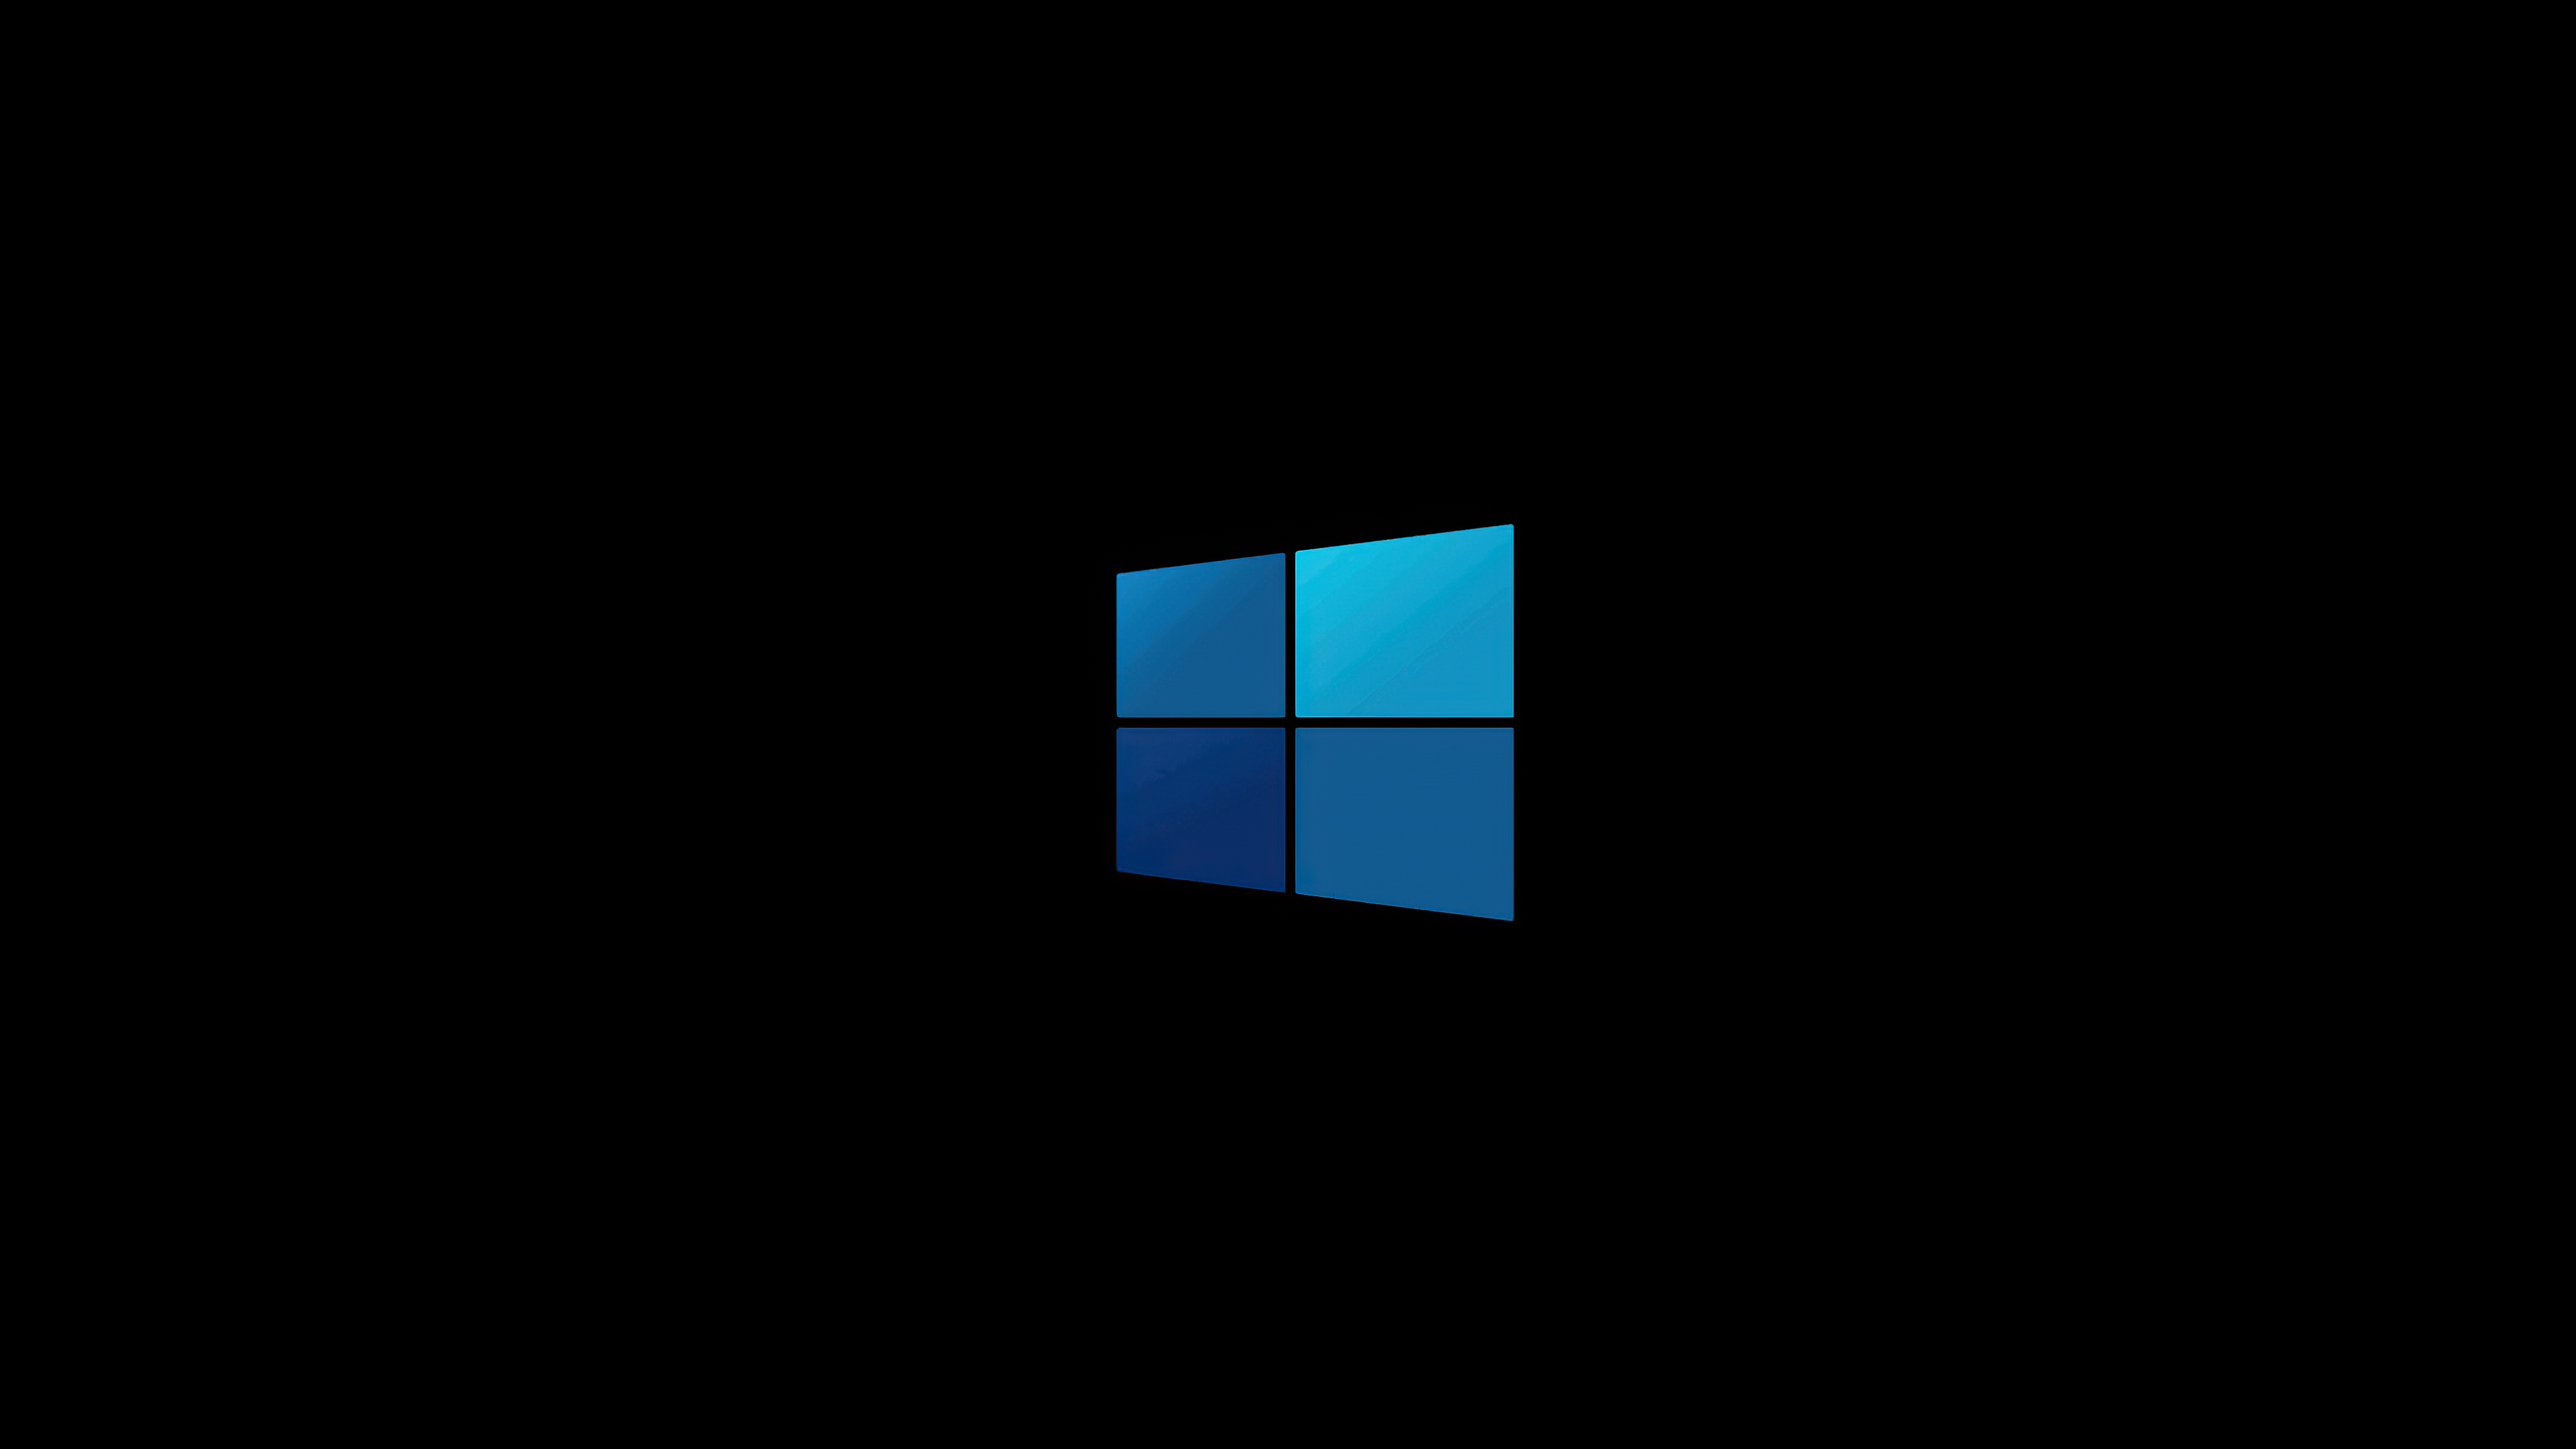 Windows 10 Minimal Logo 4k Hd Computer 4k Wallpapers Images Backgrounds Photos And Pictures